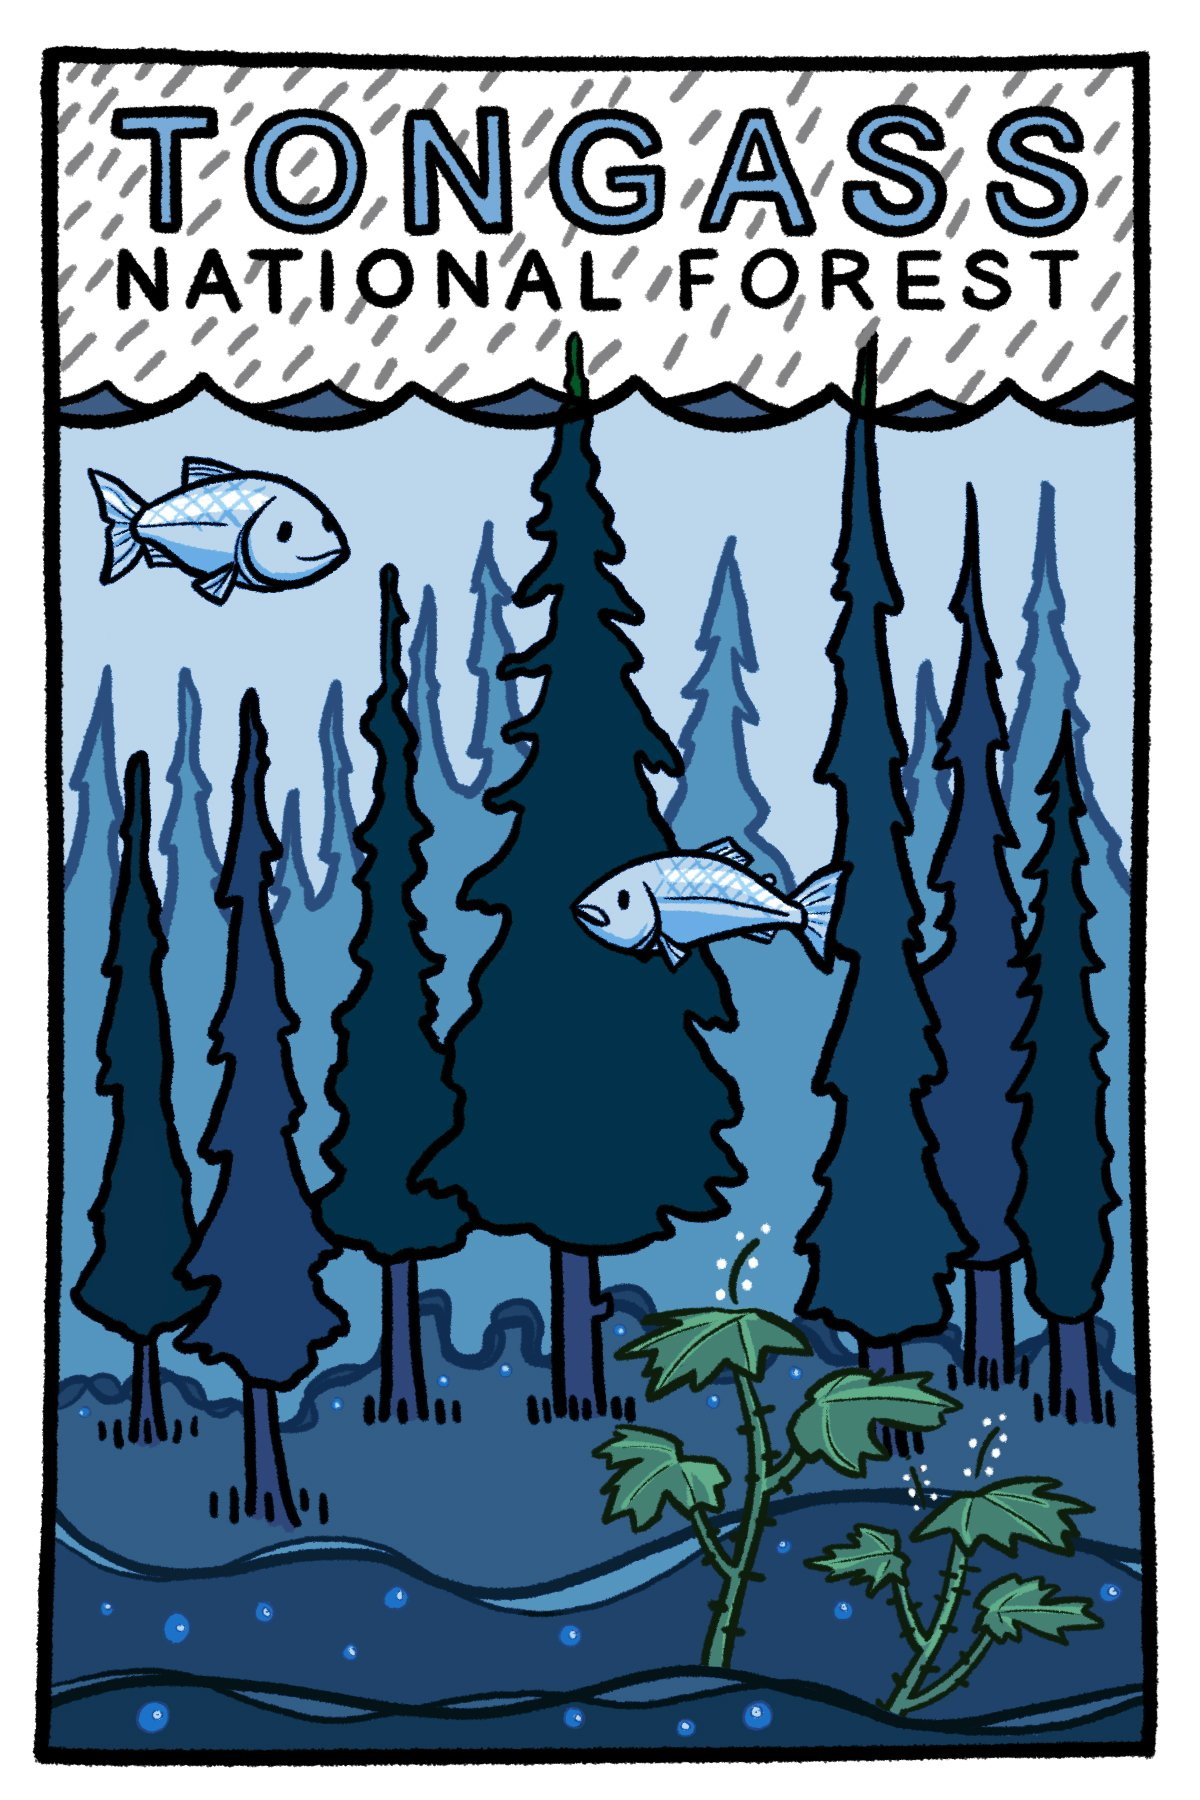 Hiking in the rainforest in alaska clipart clipart transparent stock Tongass National Forest - Postcard clipart transparent stock